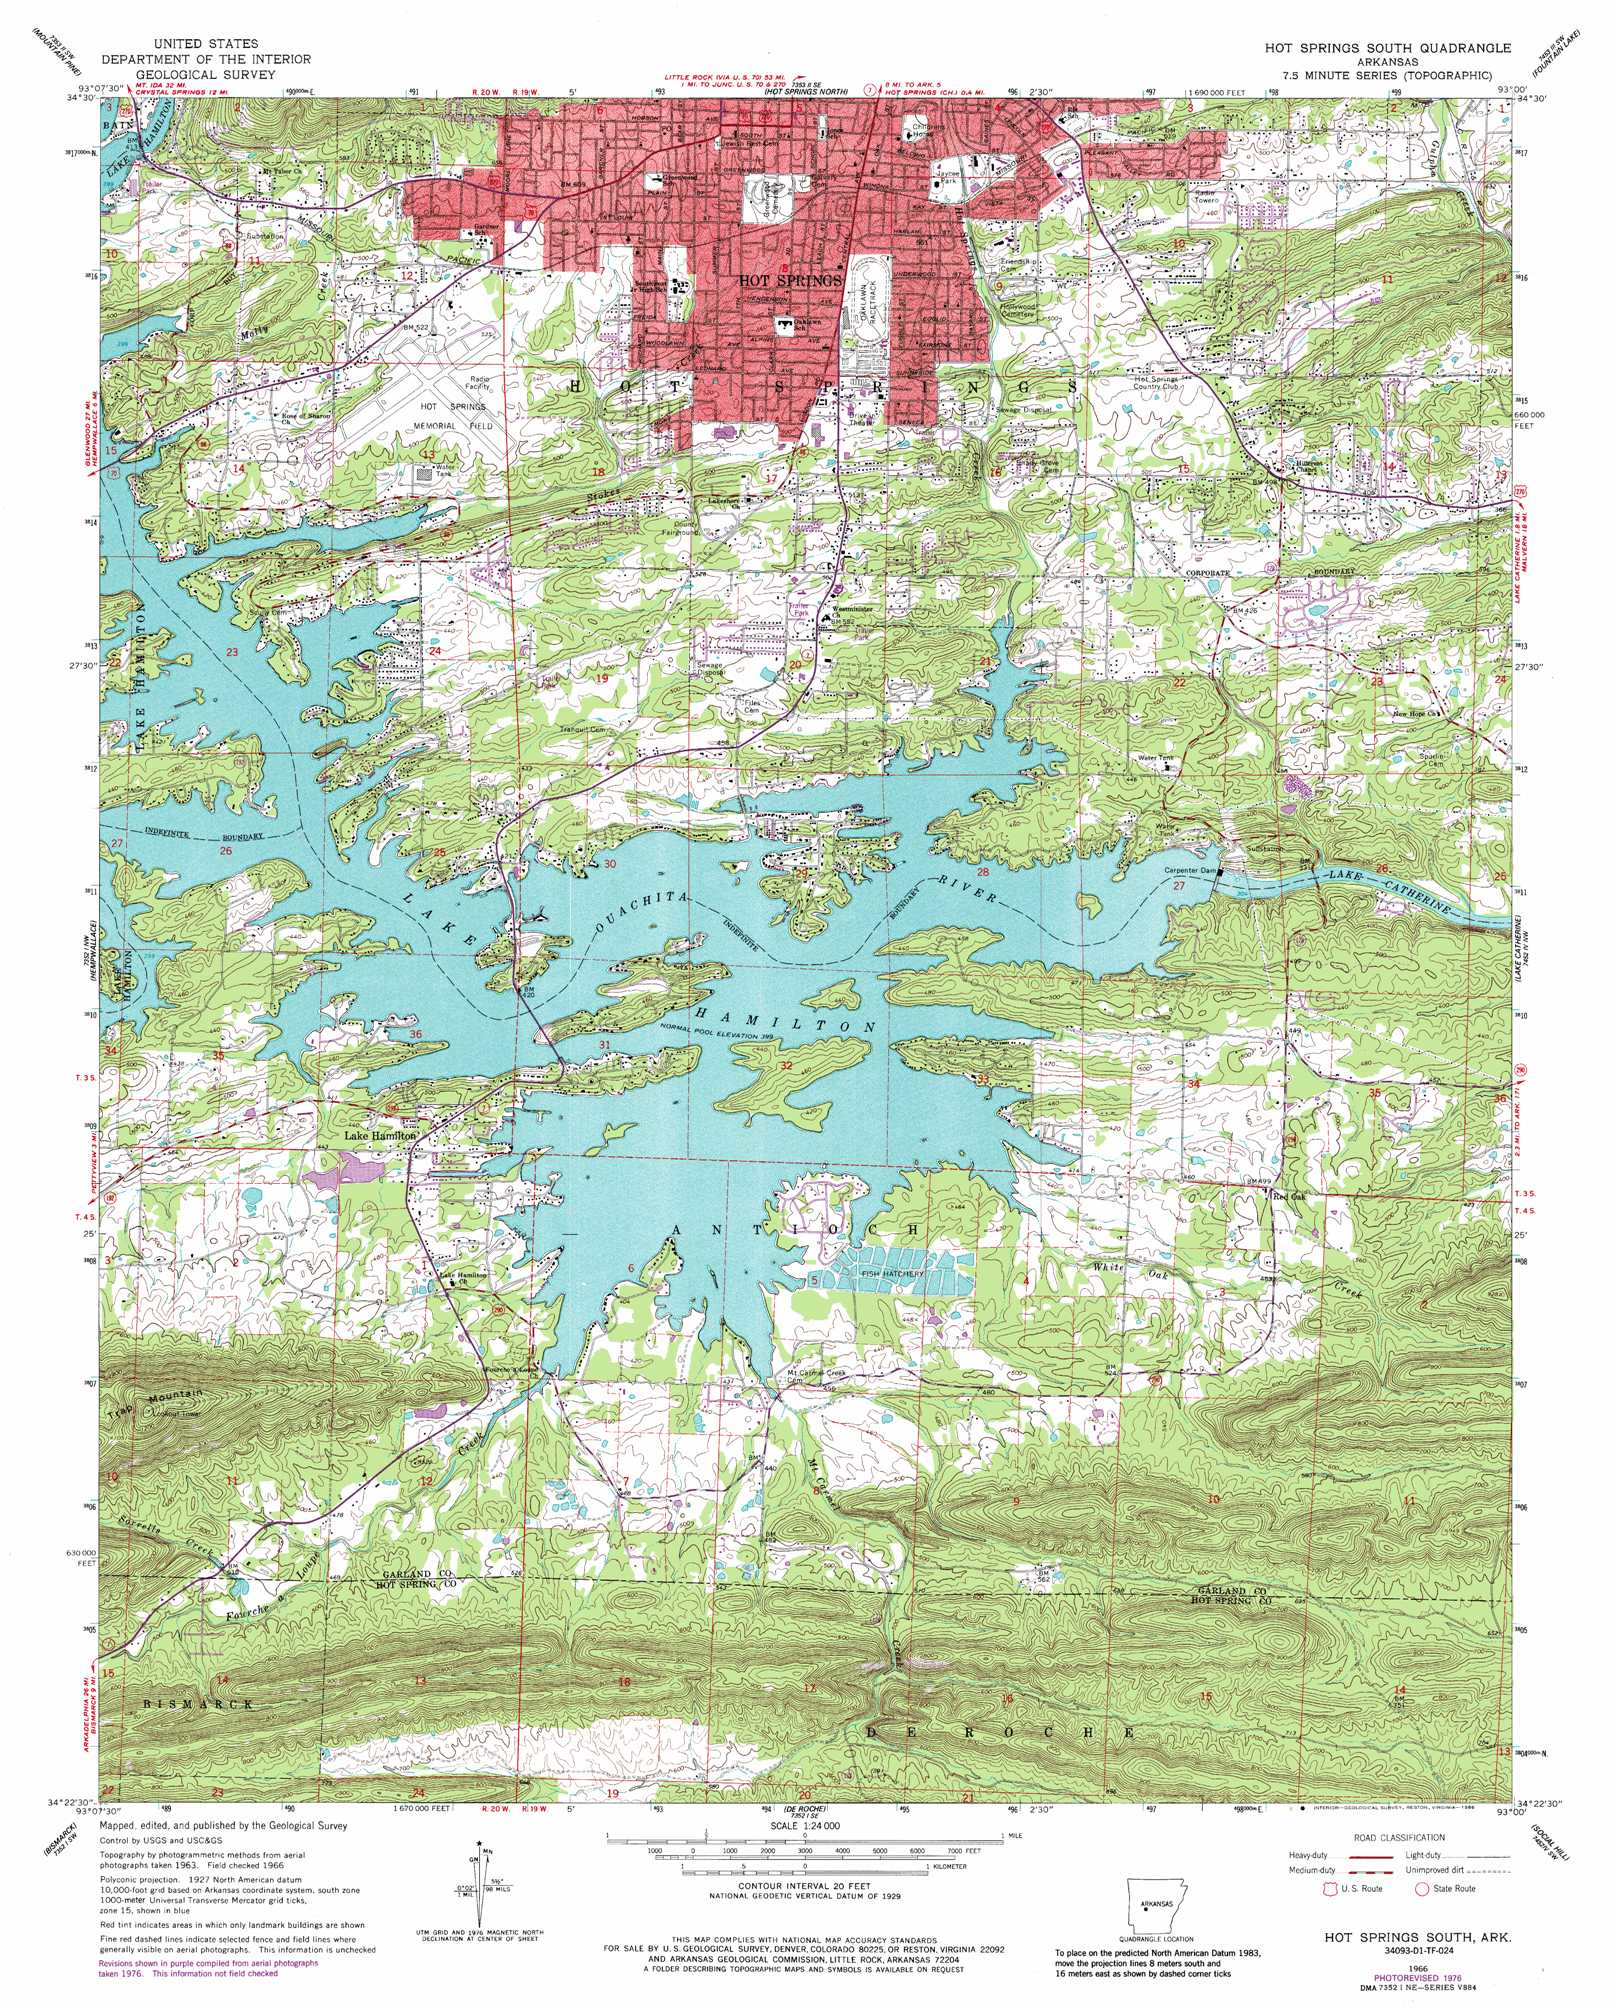 Hot Springs South topographic map, AR - USGS Topo Quad 34093d1